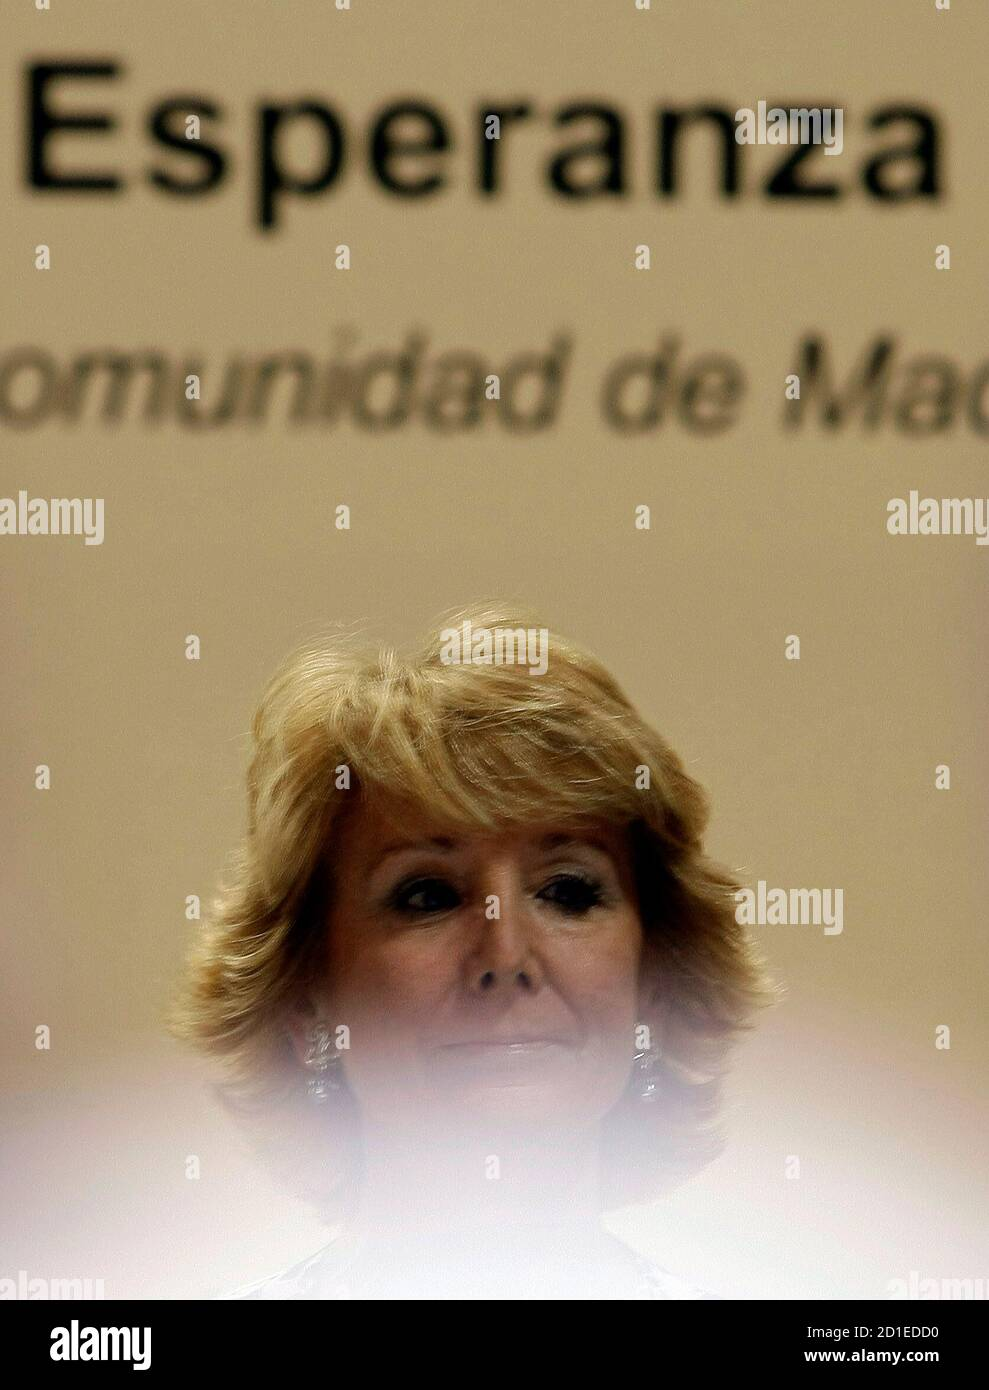 Esperanza Aguirre, the president of the Madrid Regional Government and one of the main Popular Party (PP) leaders, prepares to speak at a political luncheon in Madrid April 7, 2008. REUTERS/Sergio Perez (SPAIN) Stock Photo